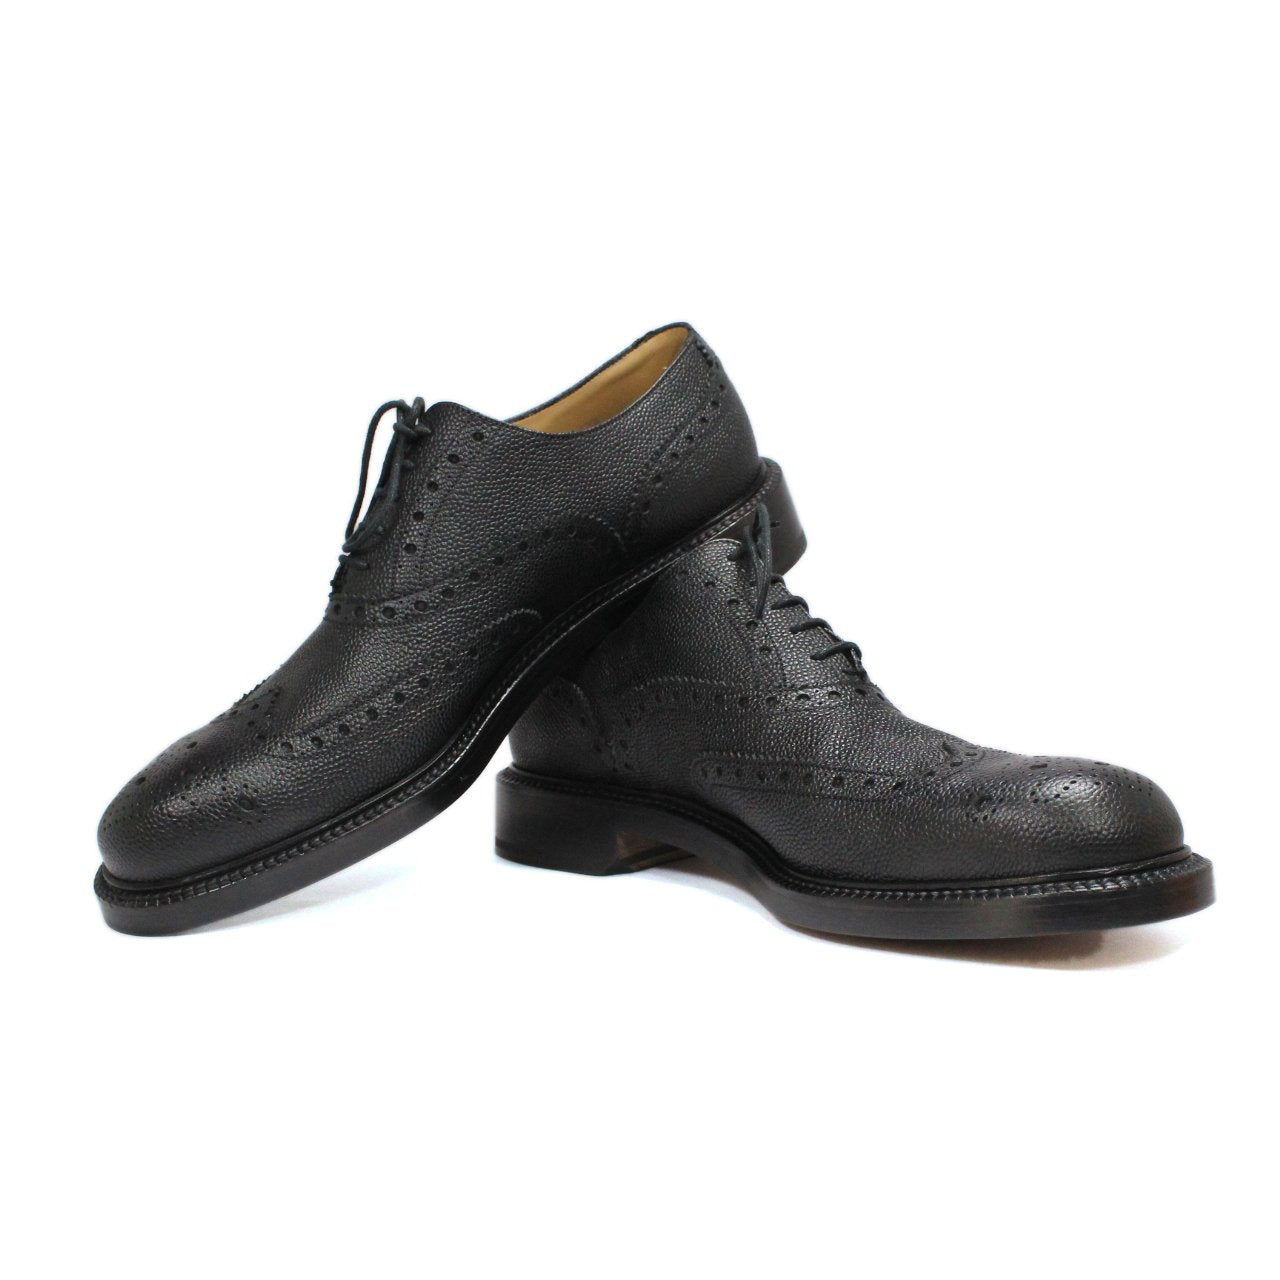 Bally Bindy Full-Brogue Men's Oxford Black Shoes